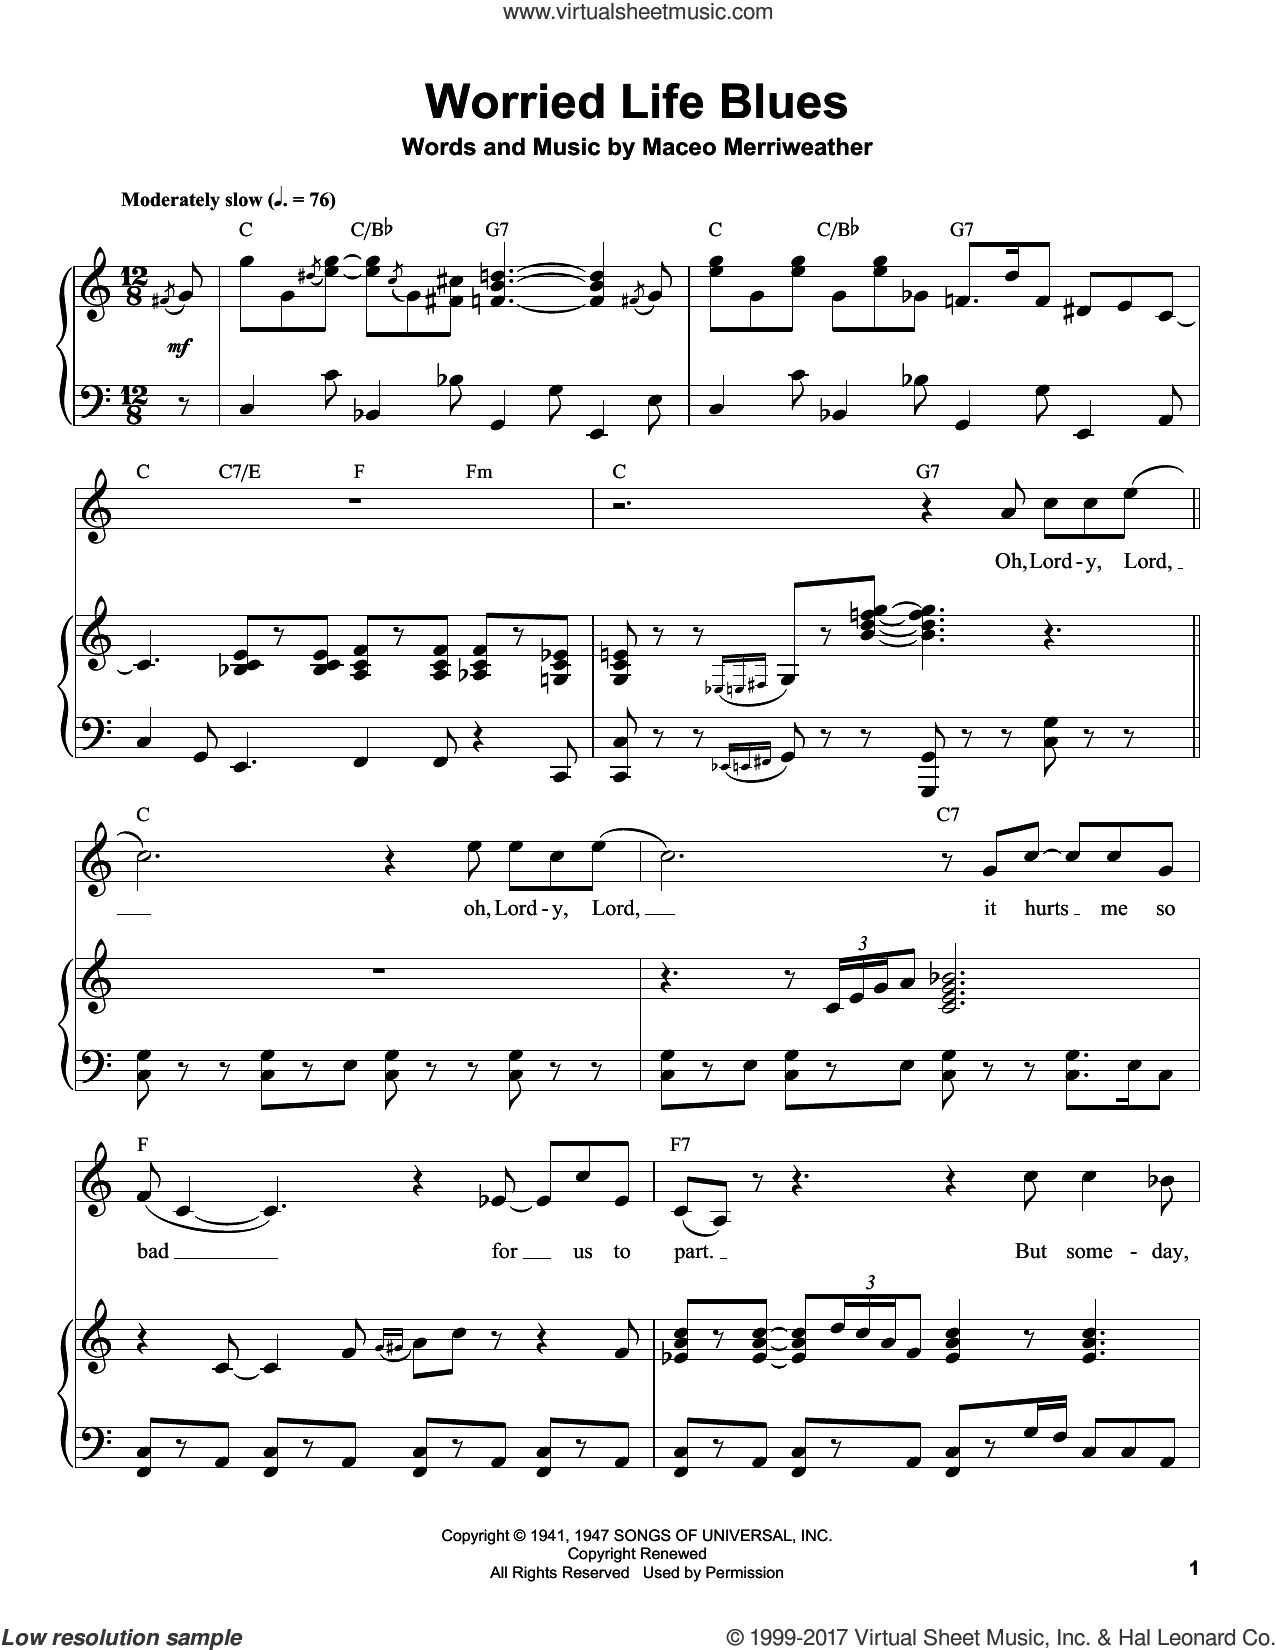 Clapton - Worried Life Blues sheet music for piano solo (transcription)